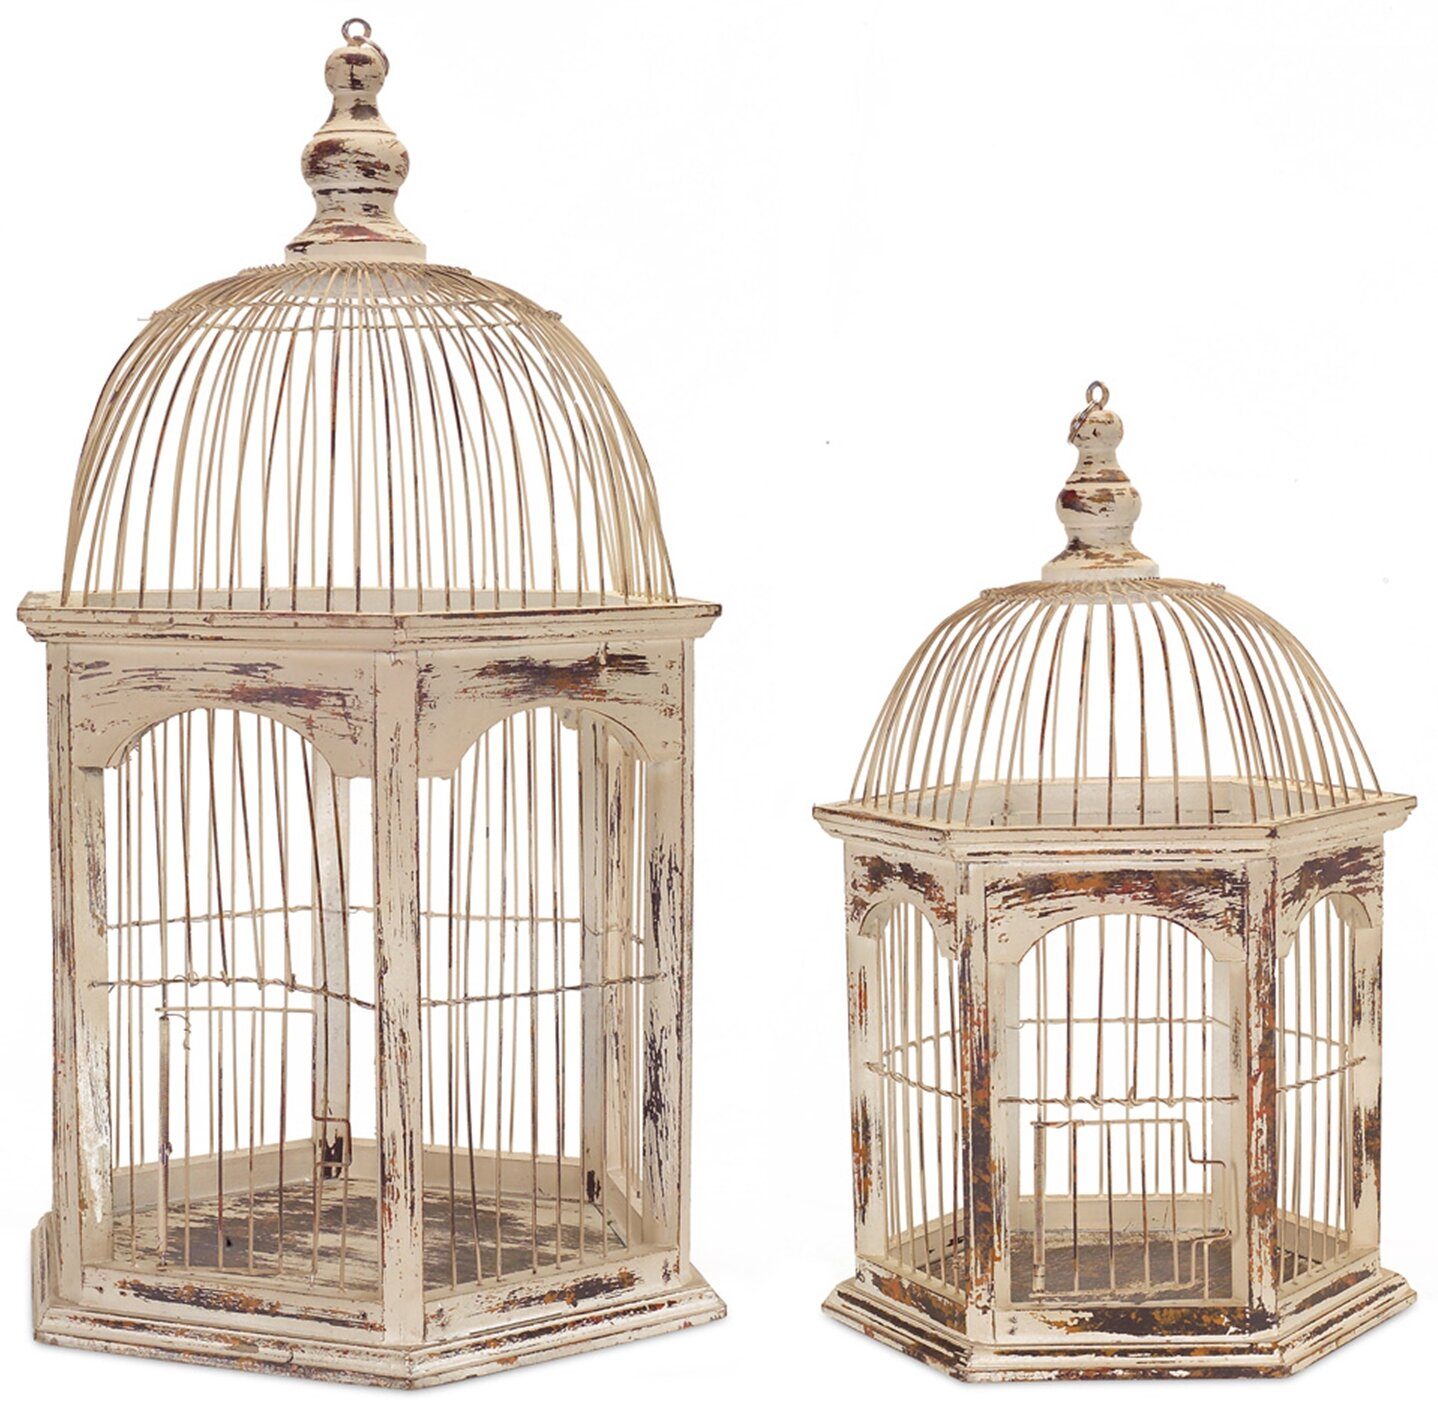 Melrose International 2 Piece Rustic Wire Decorative Bird